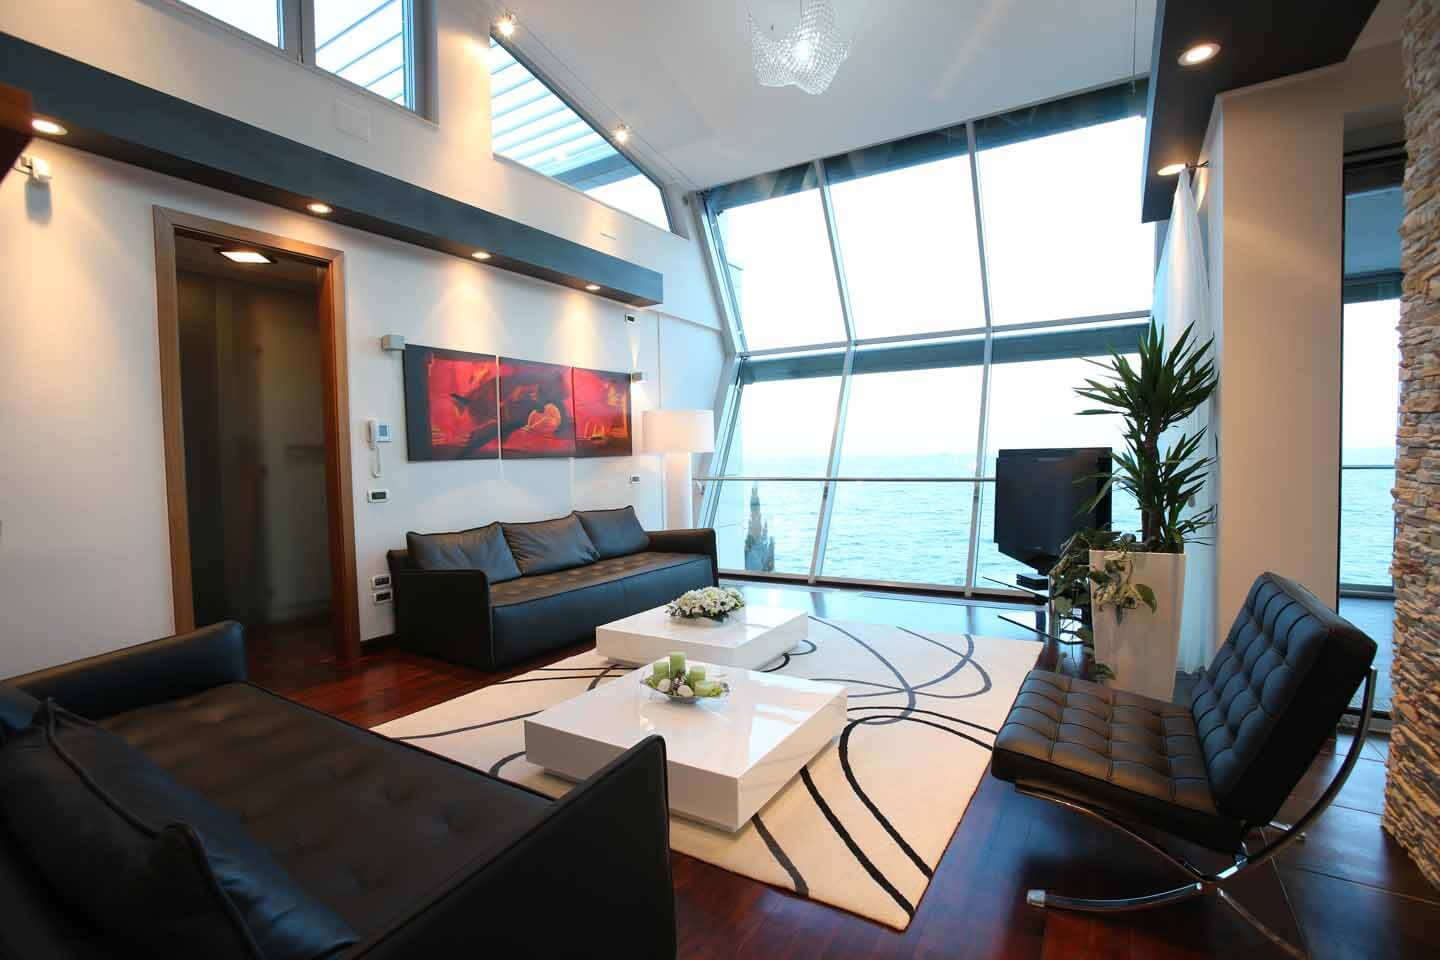 Apartment 2 - living room with sea view